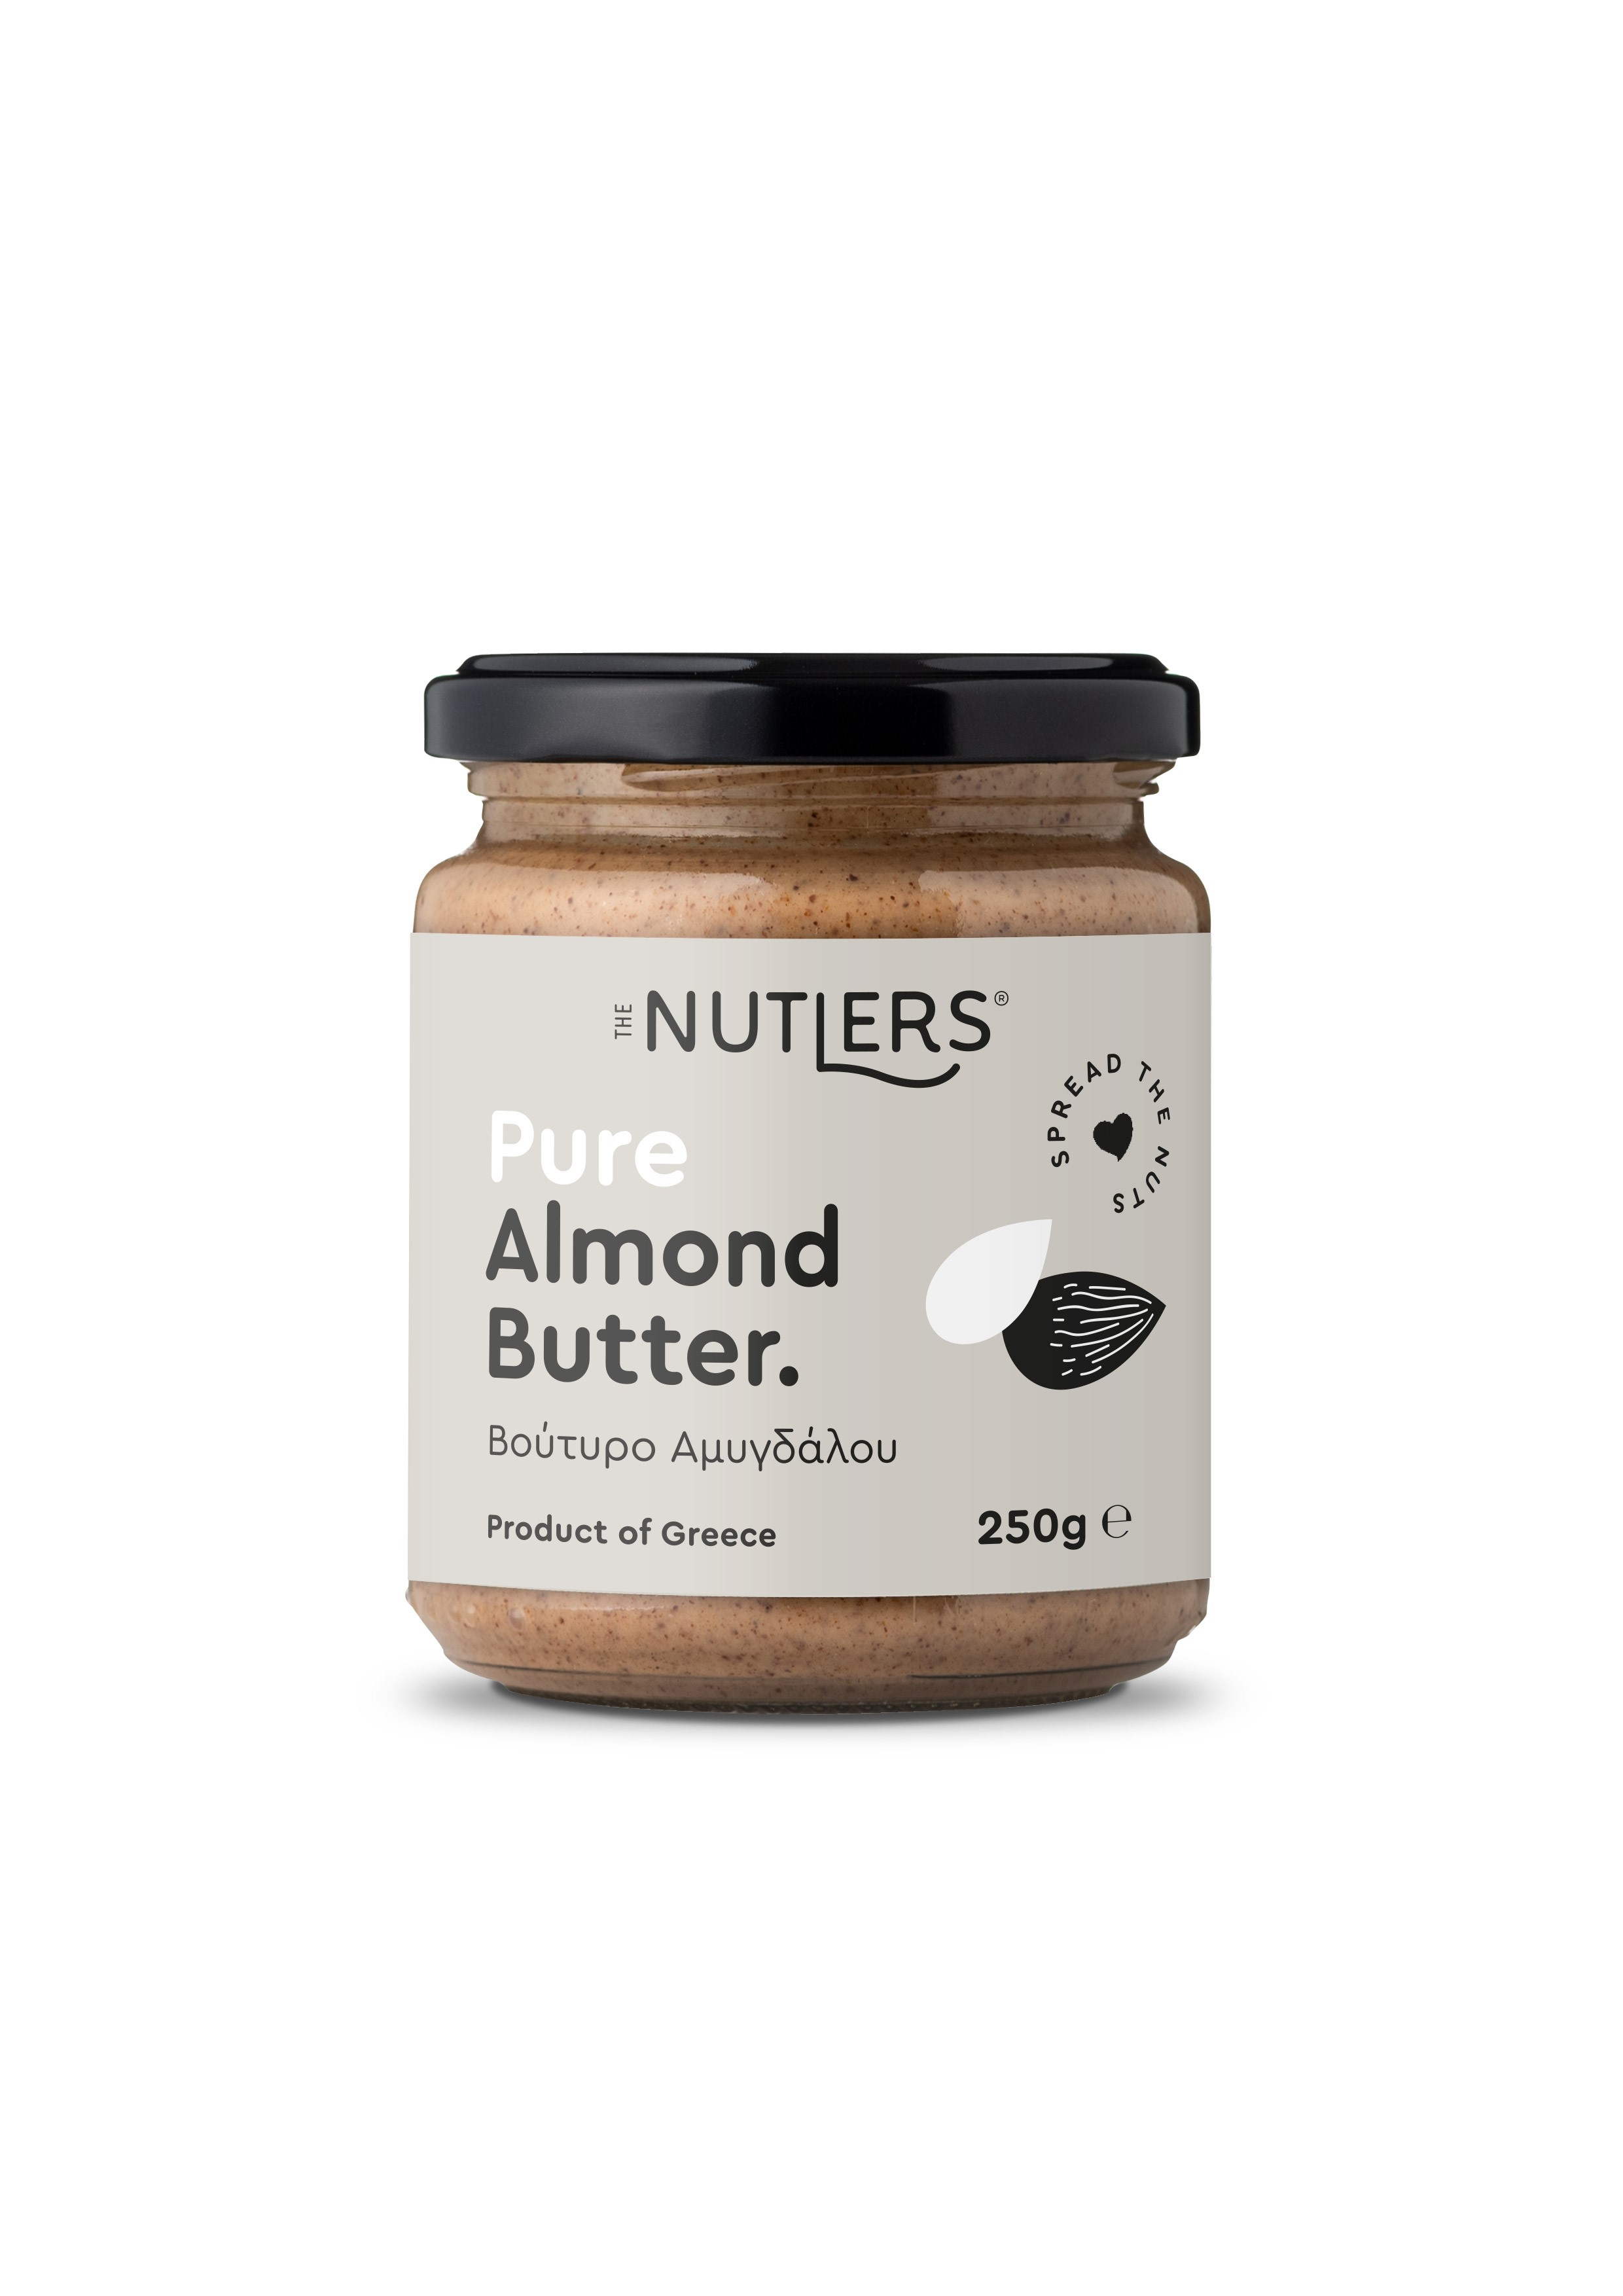 The Nutlers CLASSIC ALMOND BUTTER